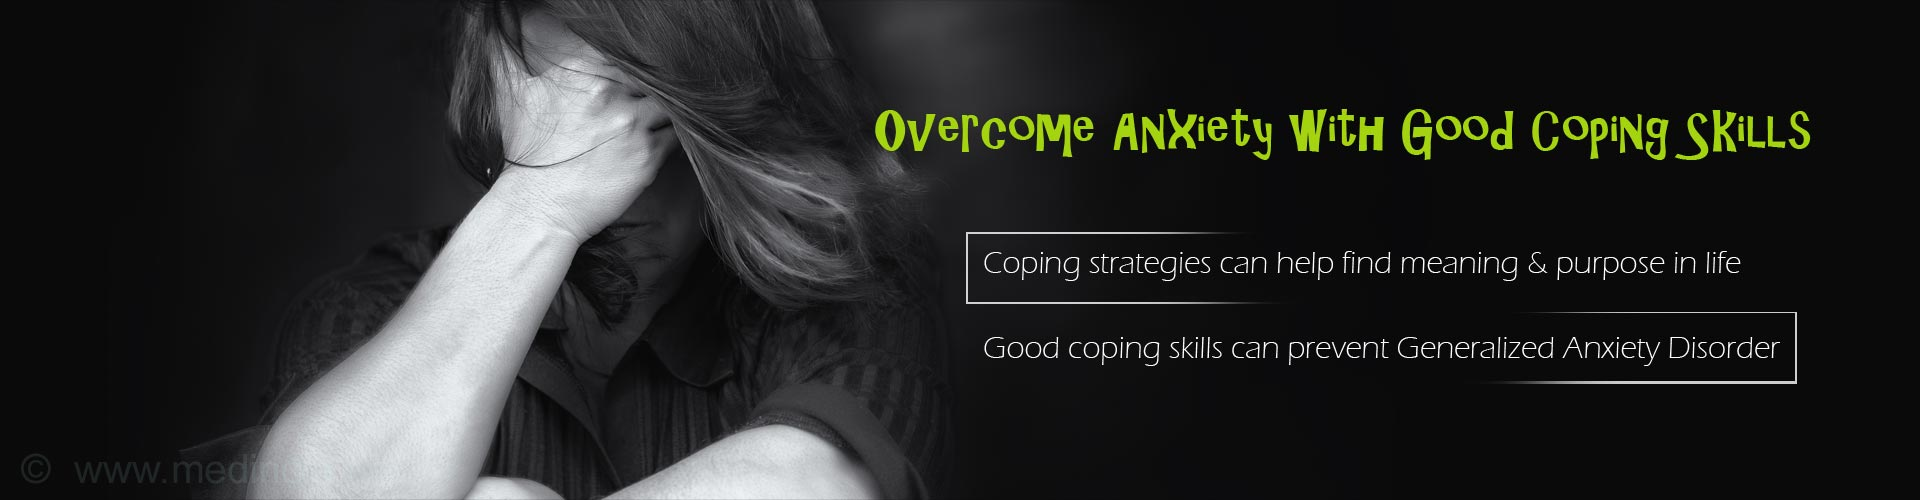 Good Coping Skills Can Help Women Overcome Anxiety